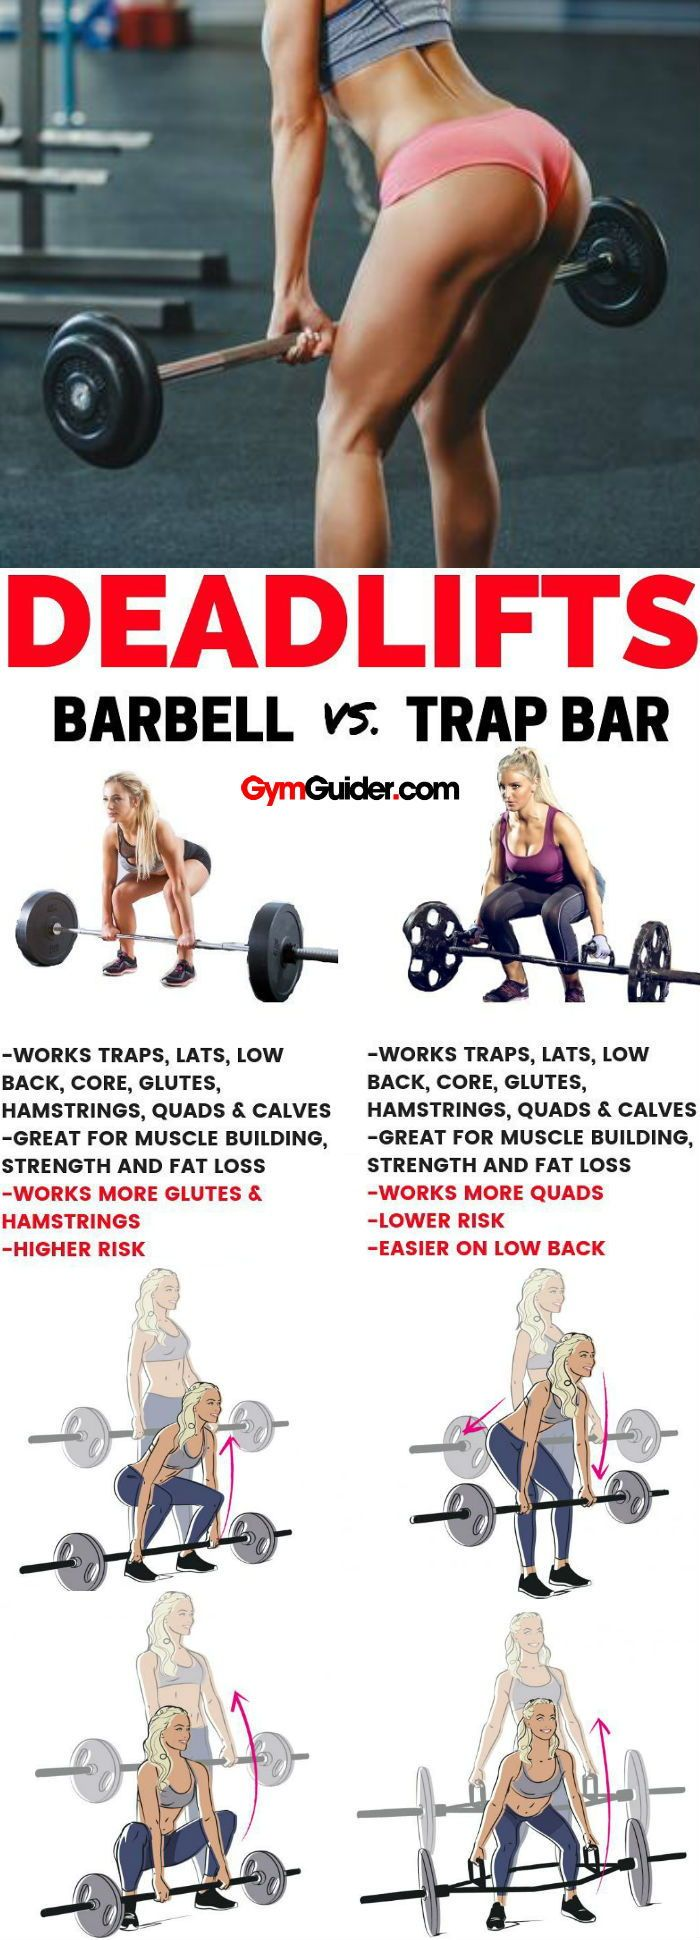 4 Deadlift Variations To Achieve A Banging Body! - GymGuider.com